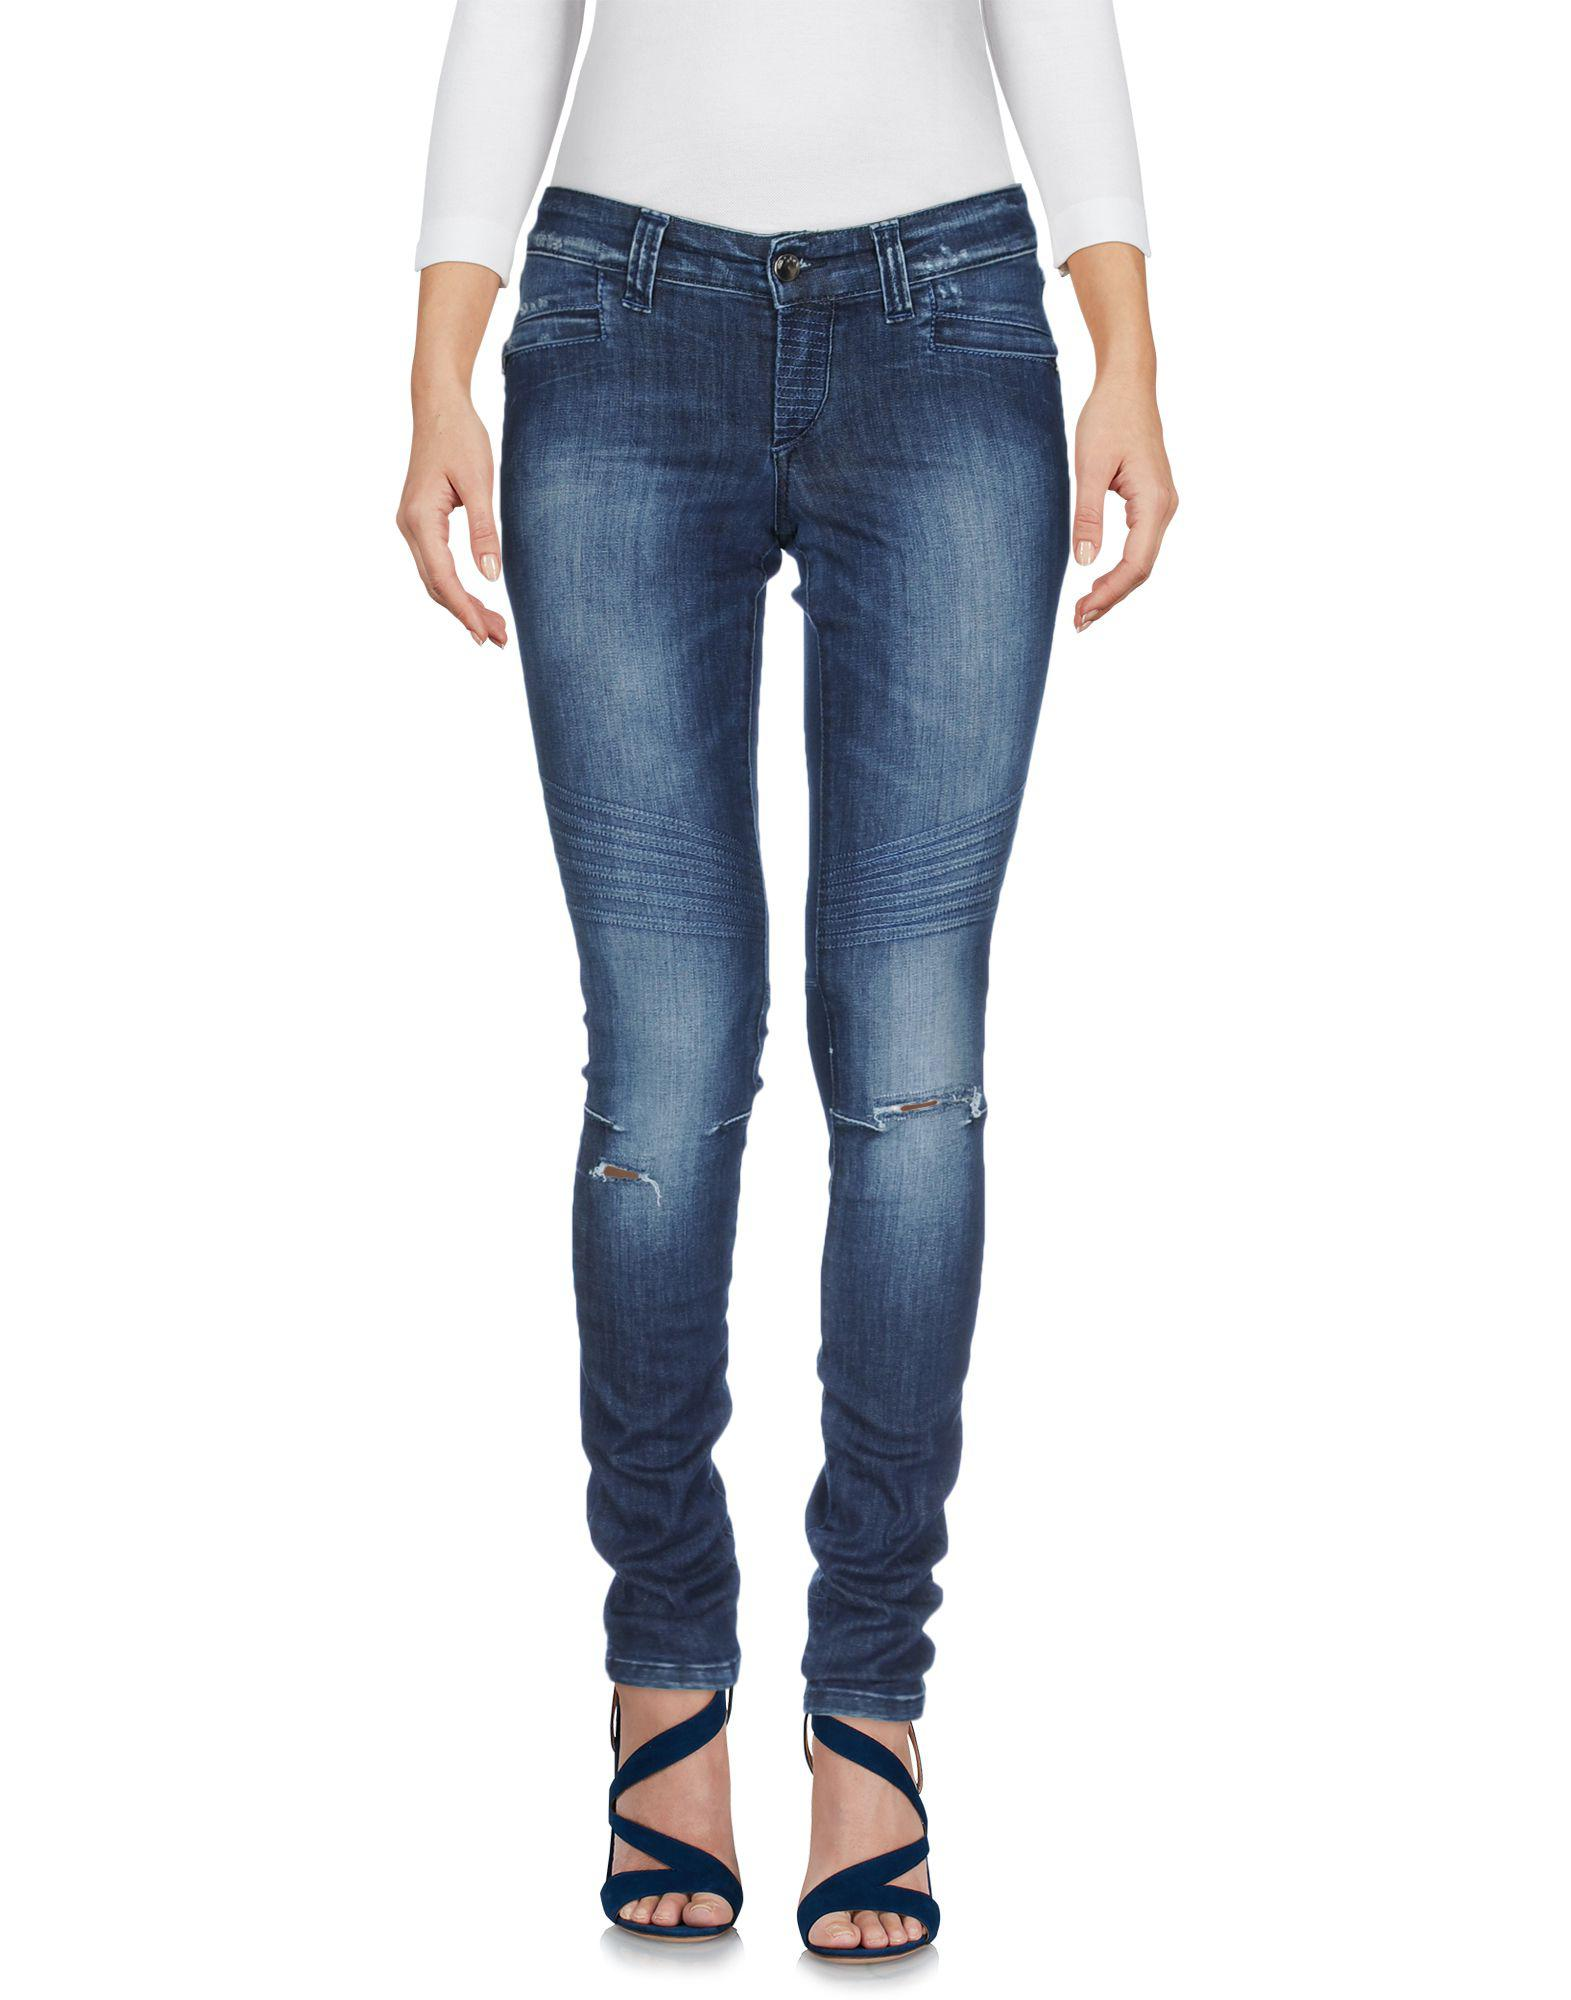 DENIM - Denim trousers Orza Studio Discount Free Shipping Eastbay Online fwDrX9dntF